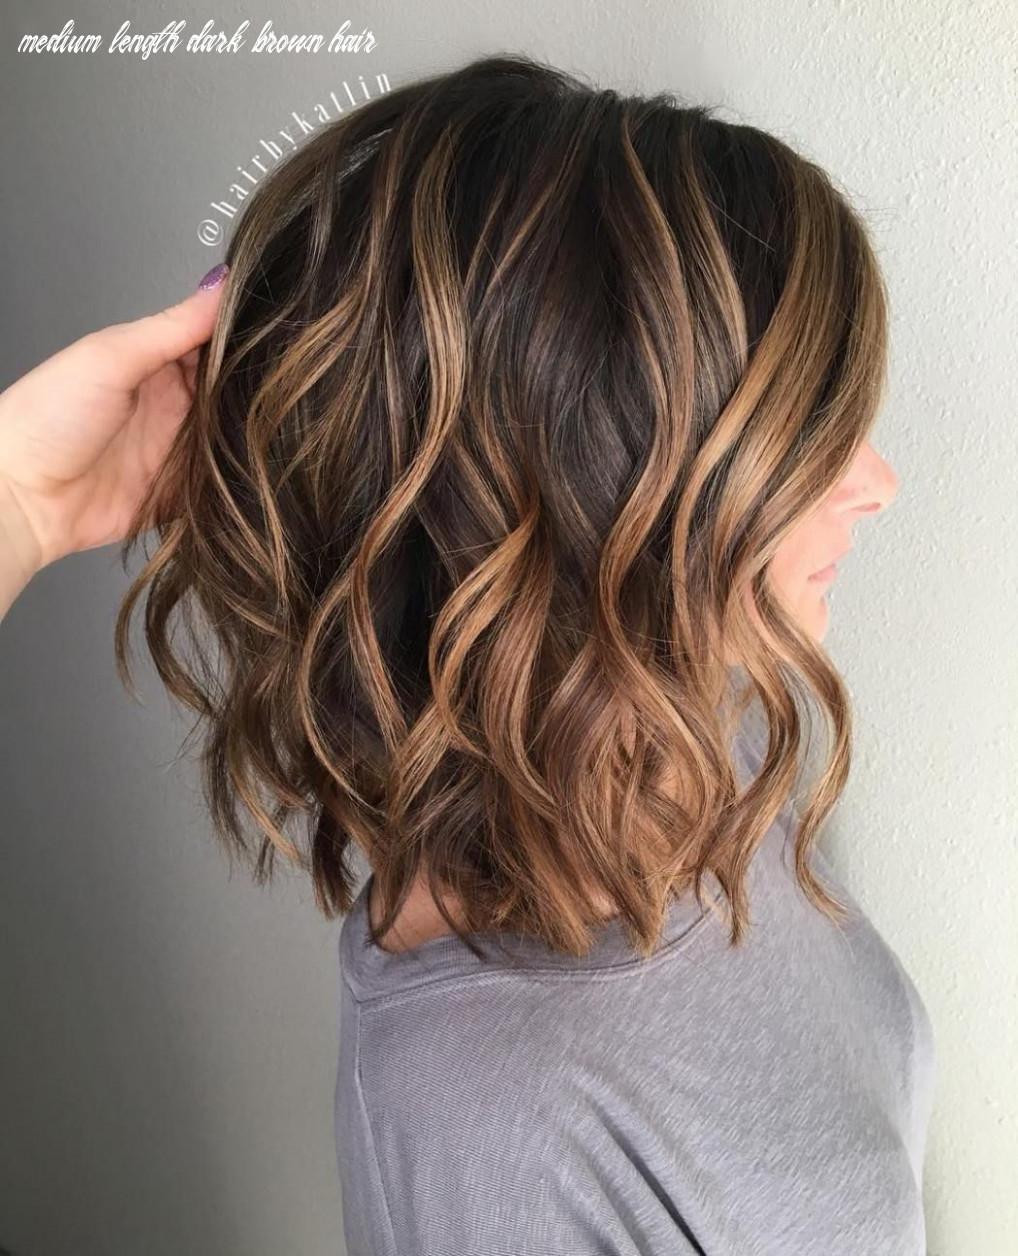 Image result for caramel highlights on dark brown curly hair